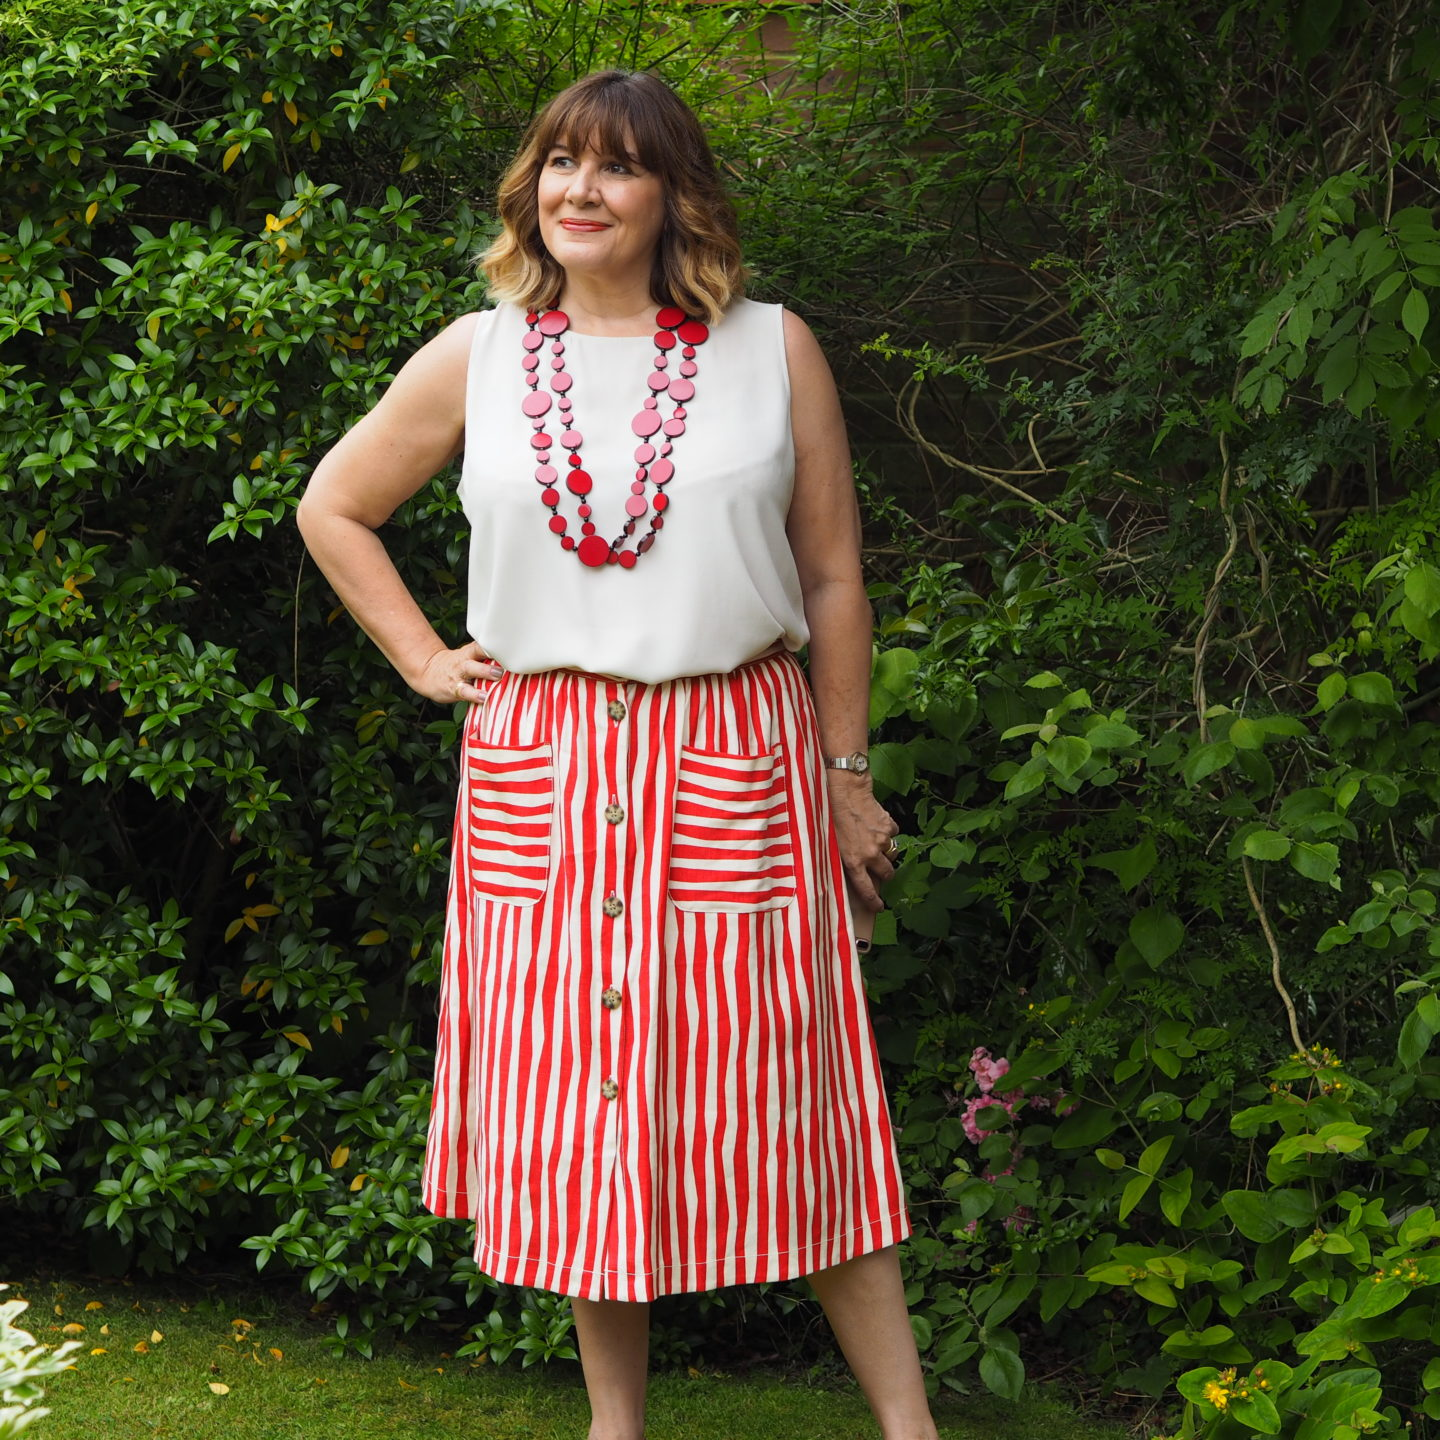 aria Sadler stylist fashion blogger wearing LK Bennett multi tasking linen red stripe skirt